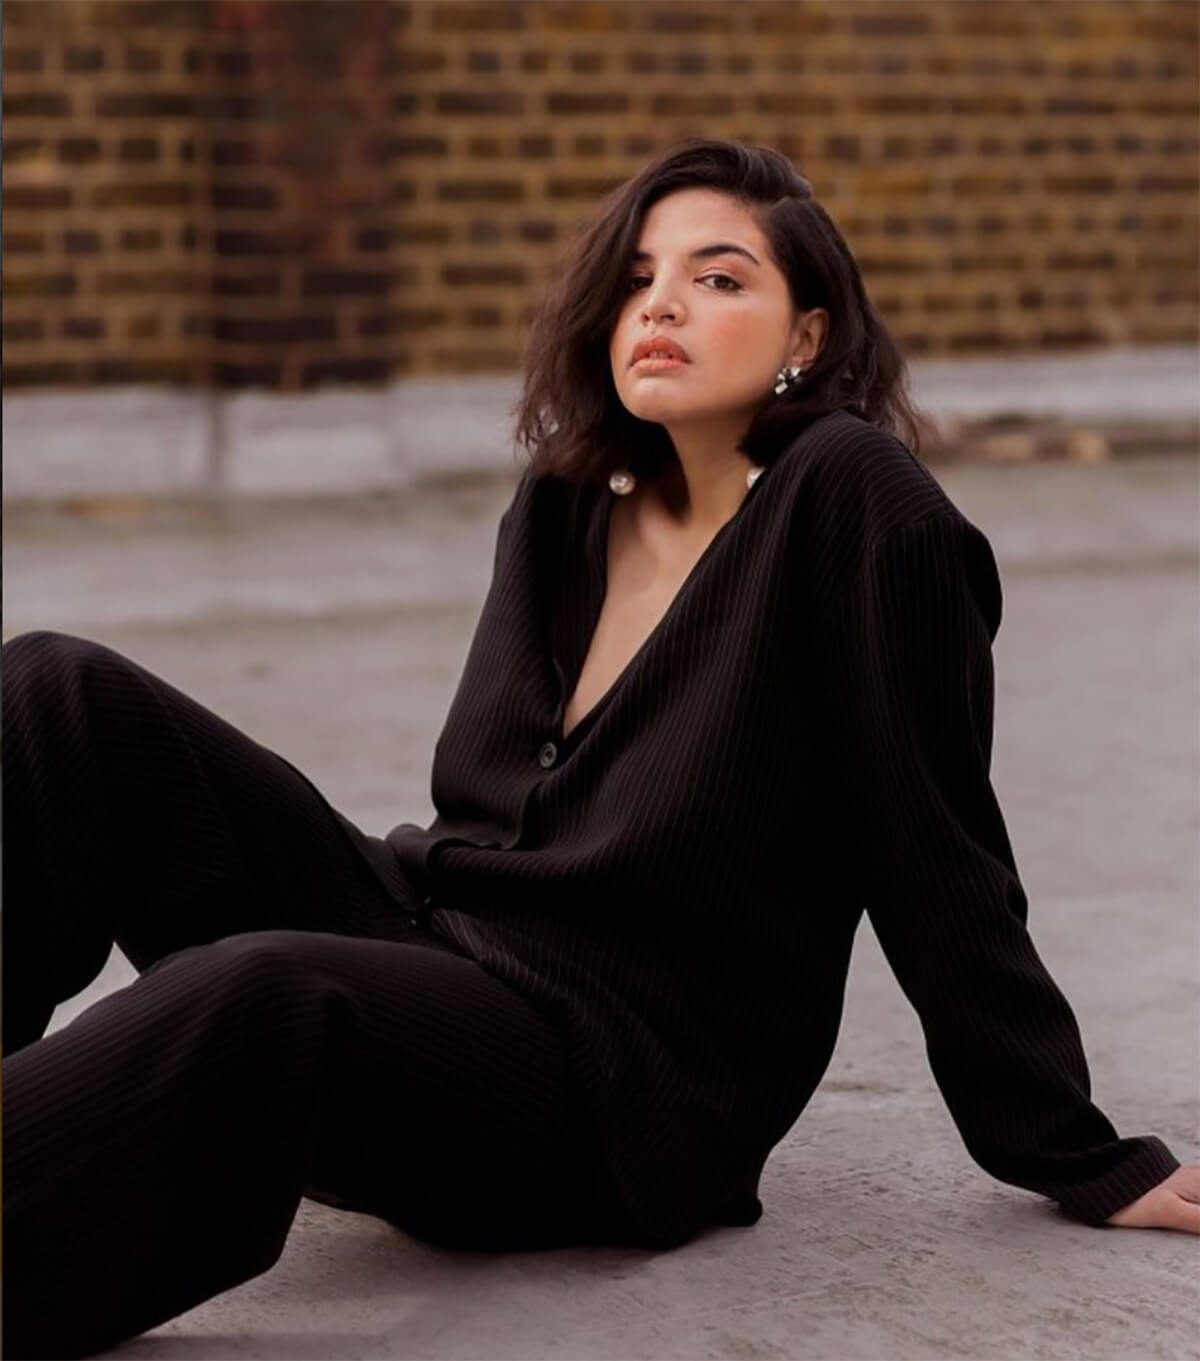 Model wearing black jumpsuit reclining on the ground